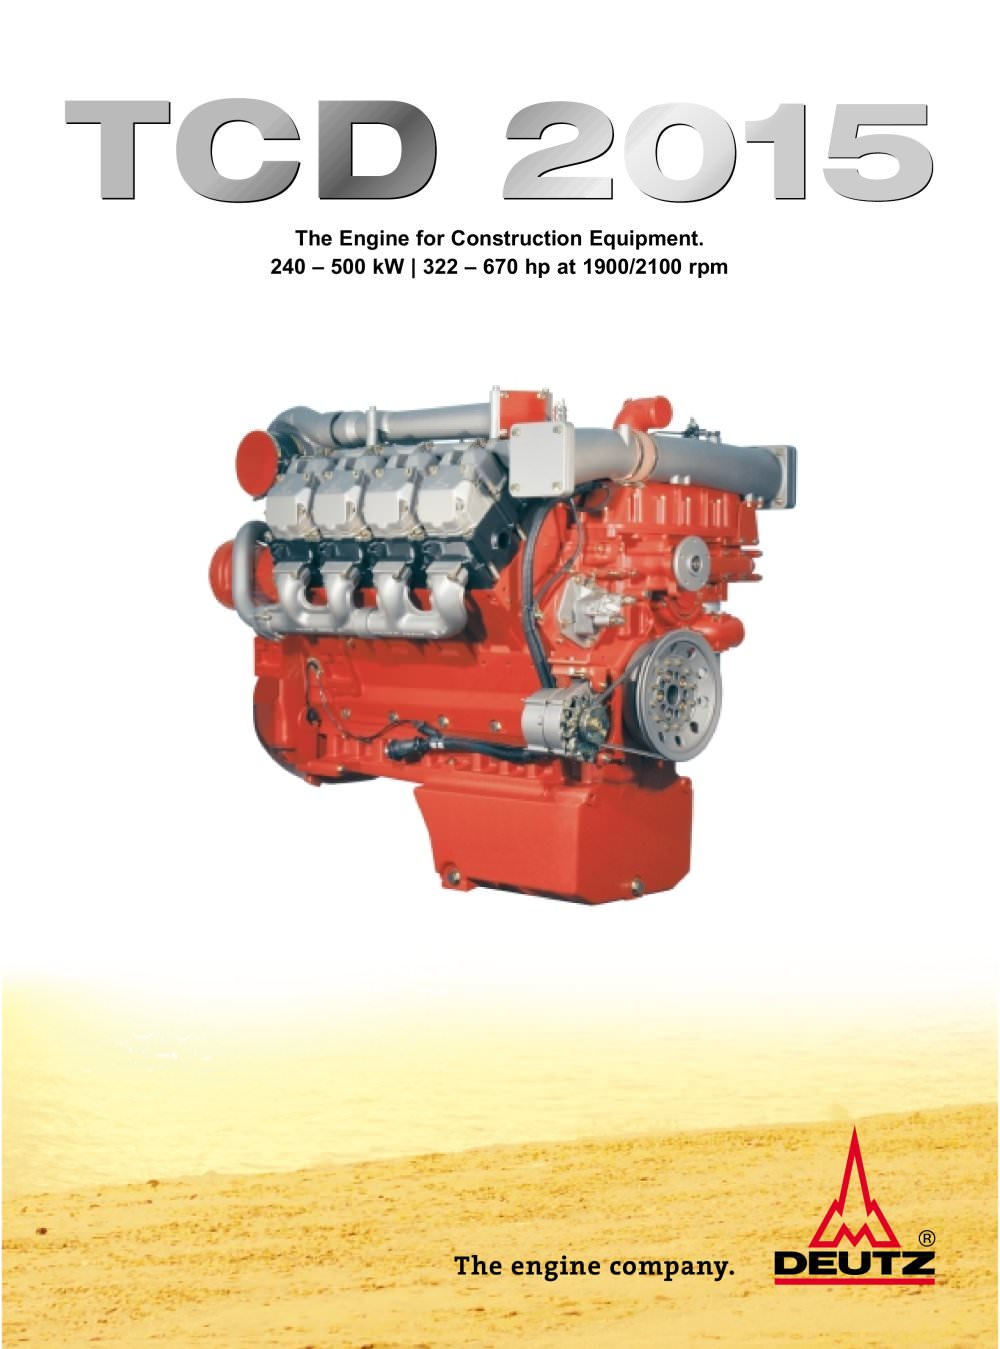 TCD 2015 The construction equipment engine - 1 / 4 Pages